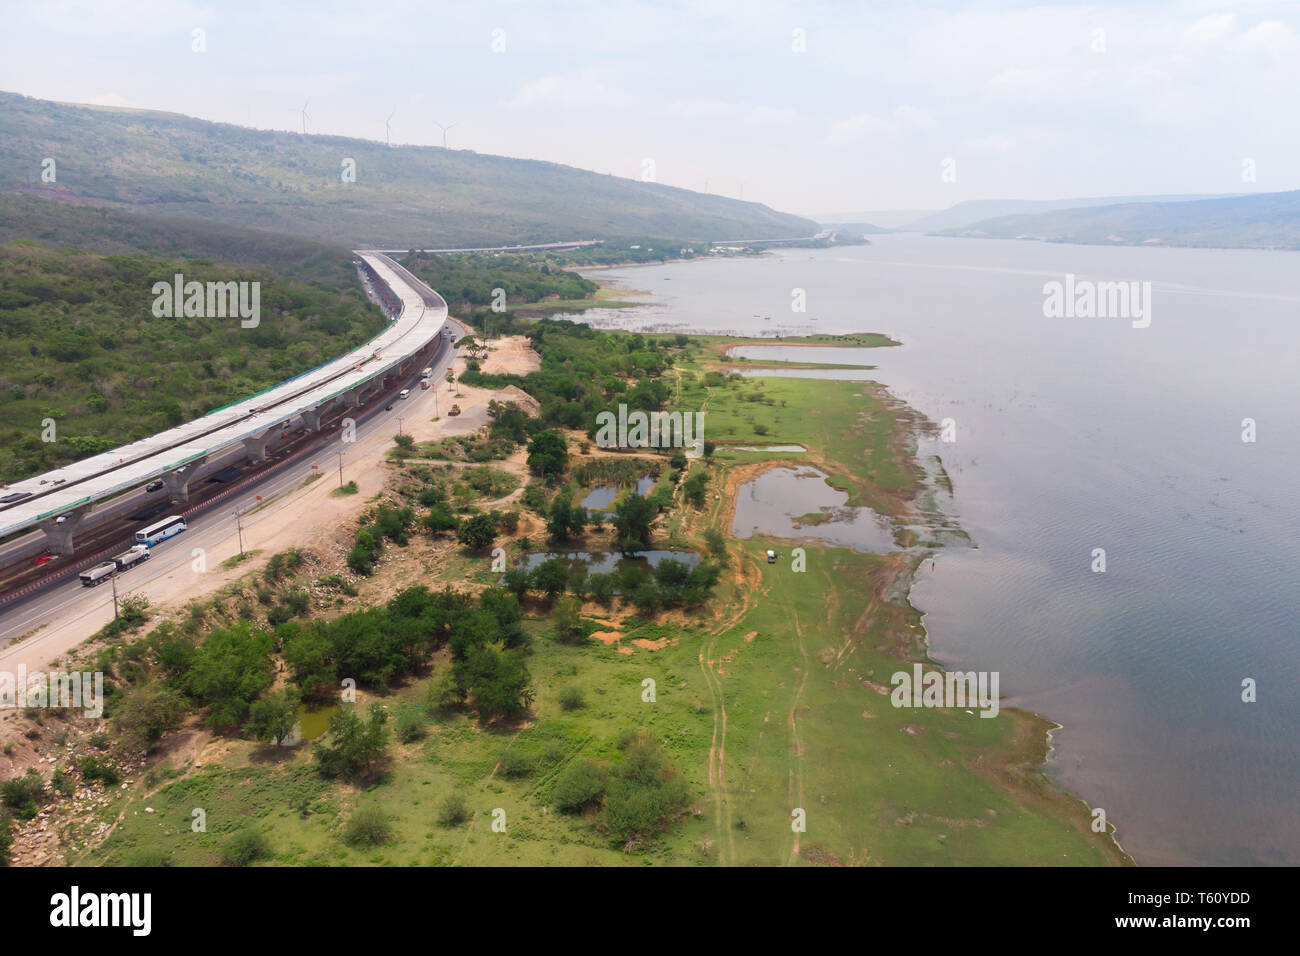 Drone shot aerial view landscape of under construction motorway tolls near big natural river - Stock Image